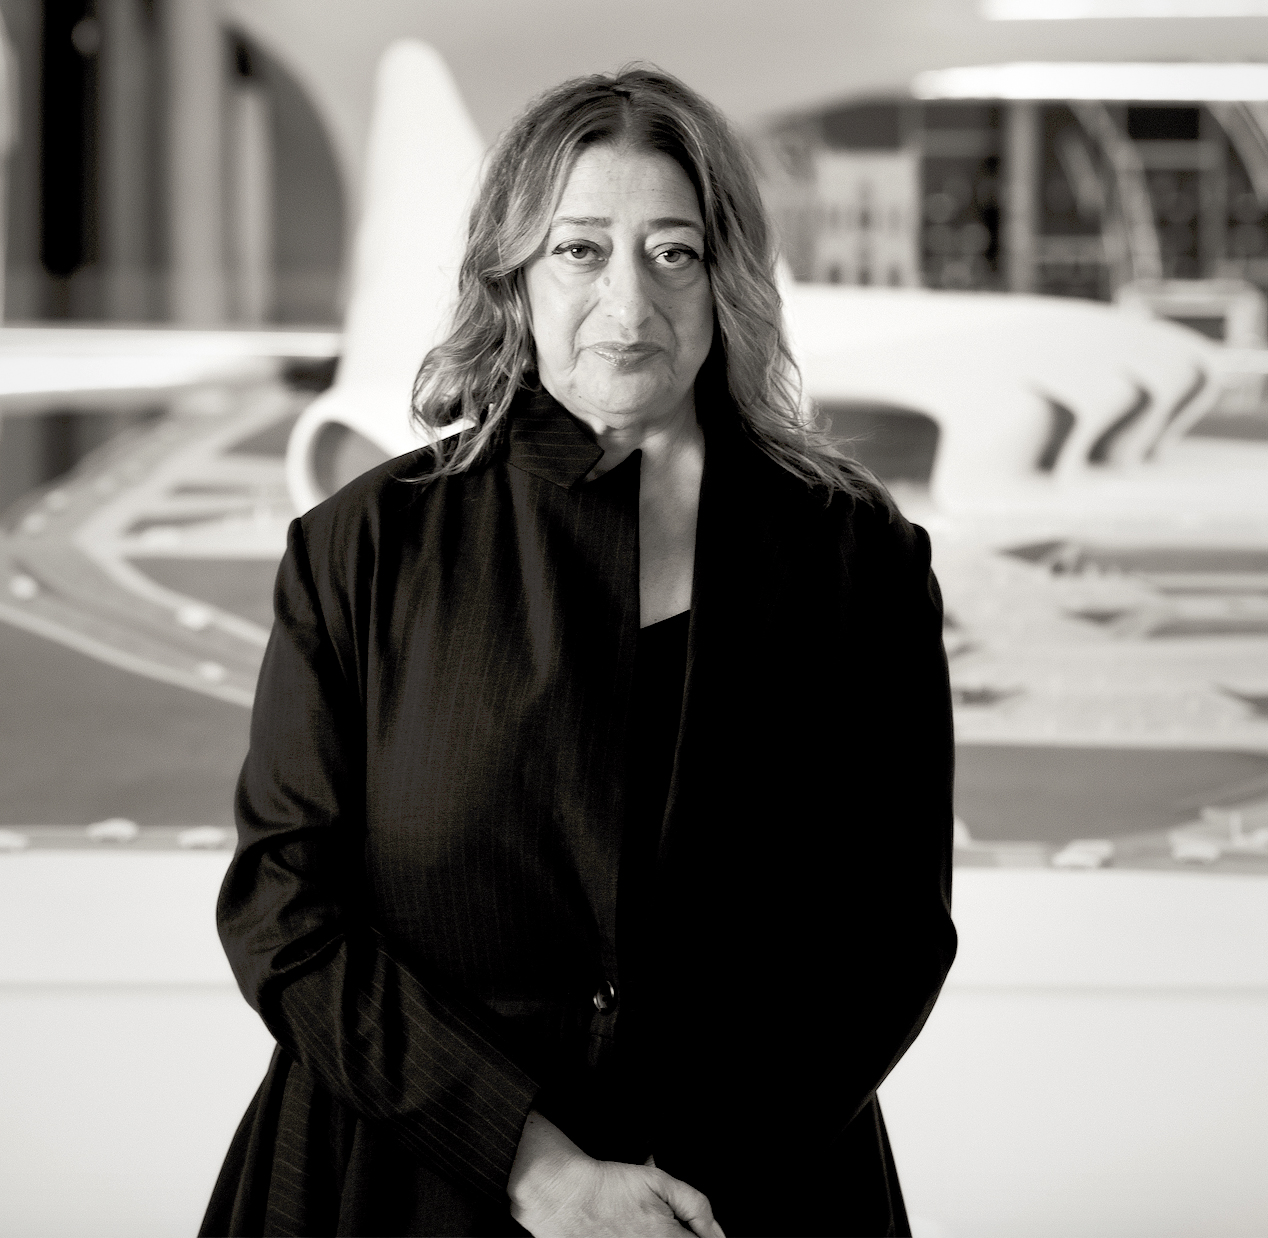 Zaha_Hadid_in_Heydar_Aliyev_Cultural_center_in_Baku